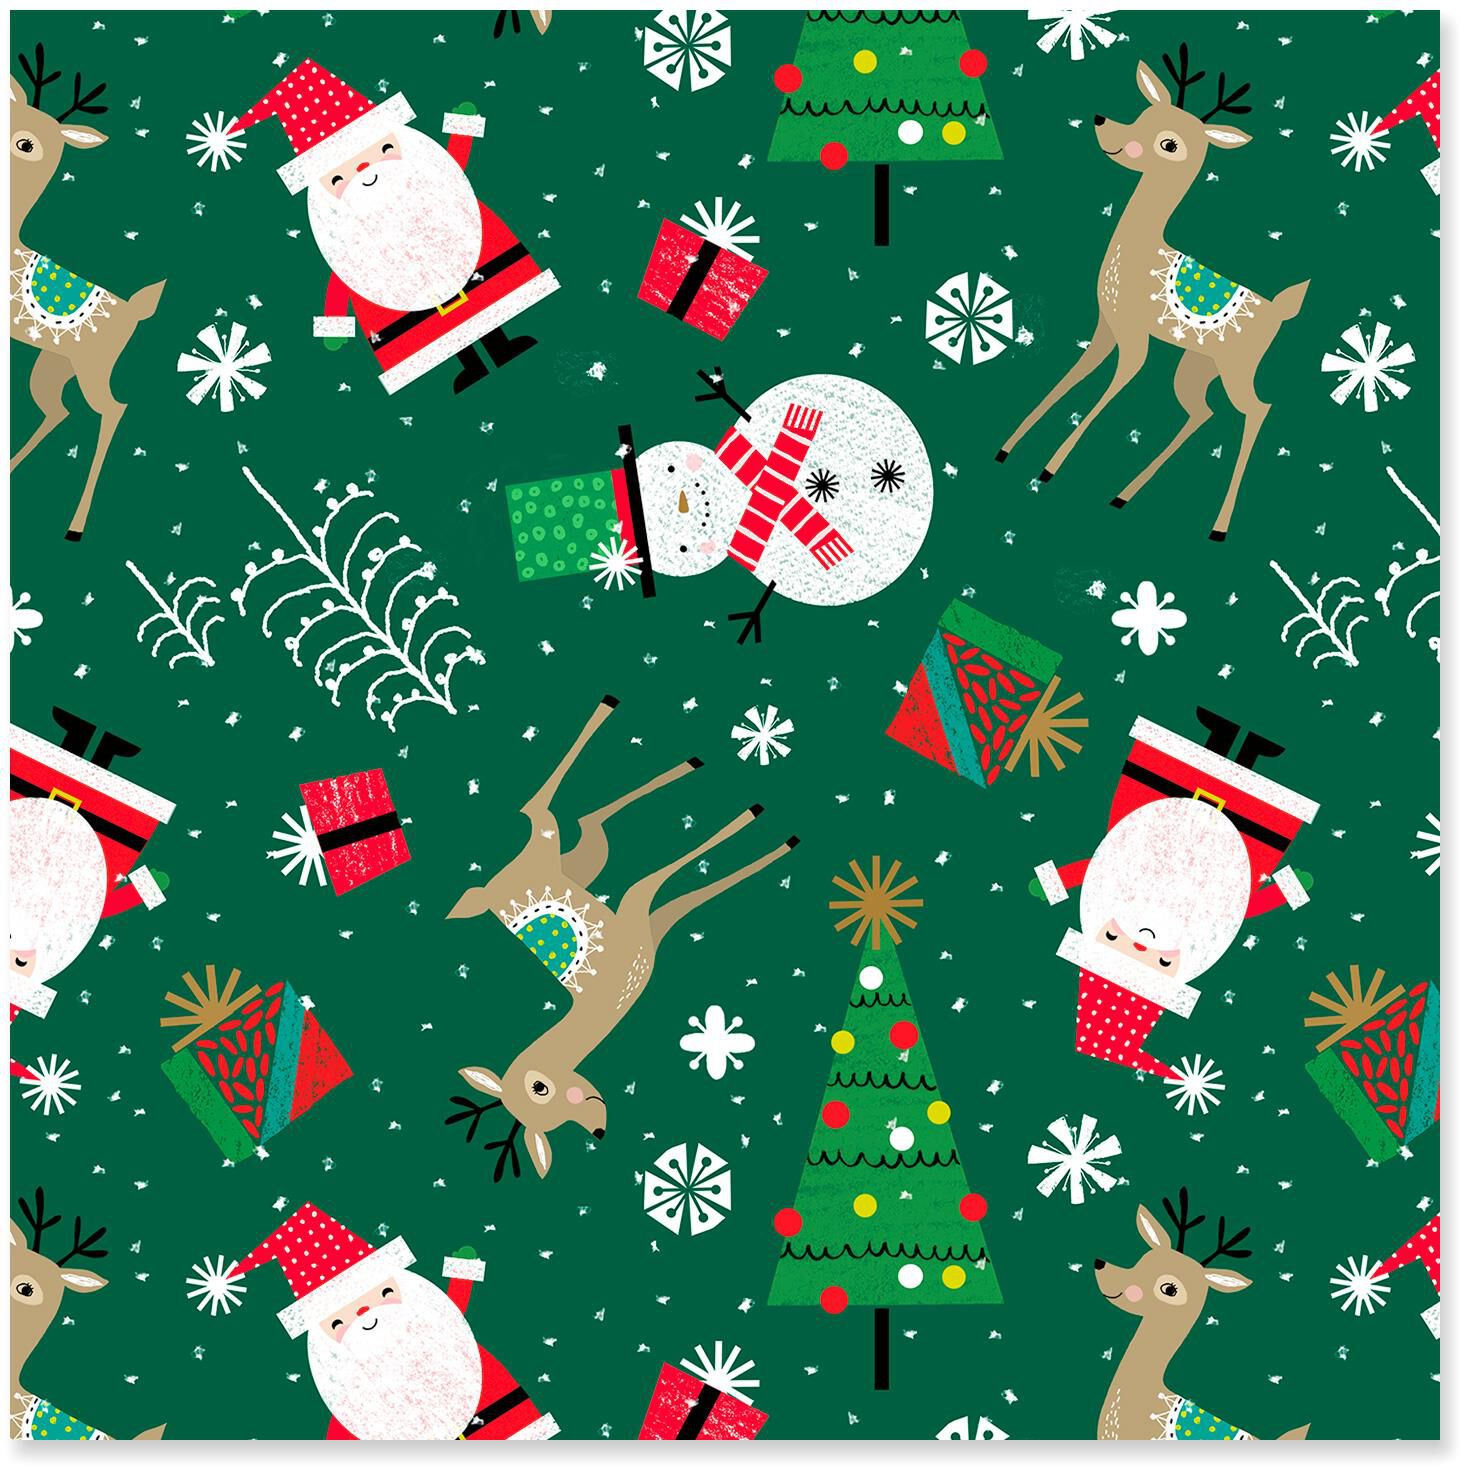 jumbo christmas wrapping paper roll wrapping paper hallmark